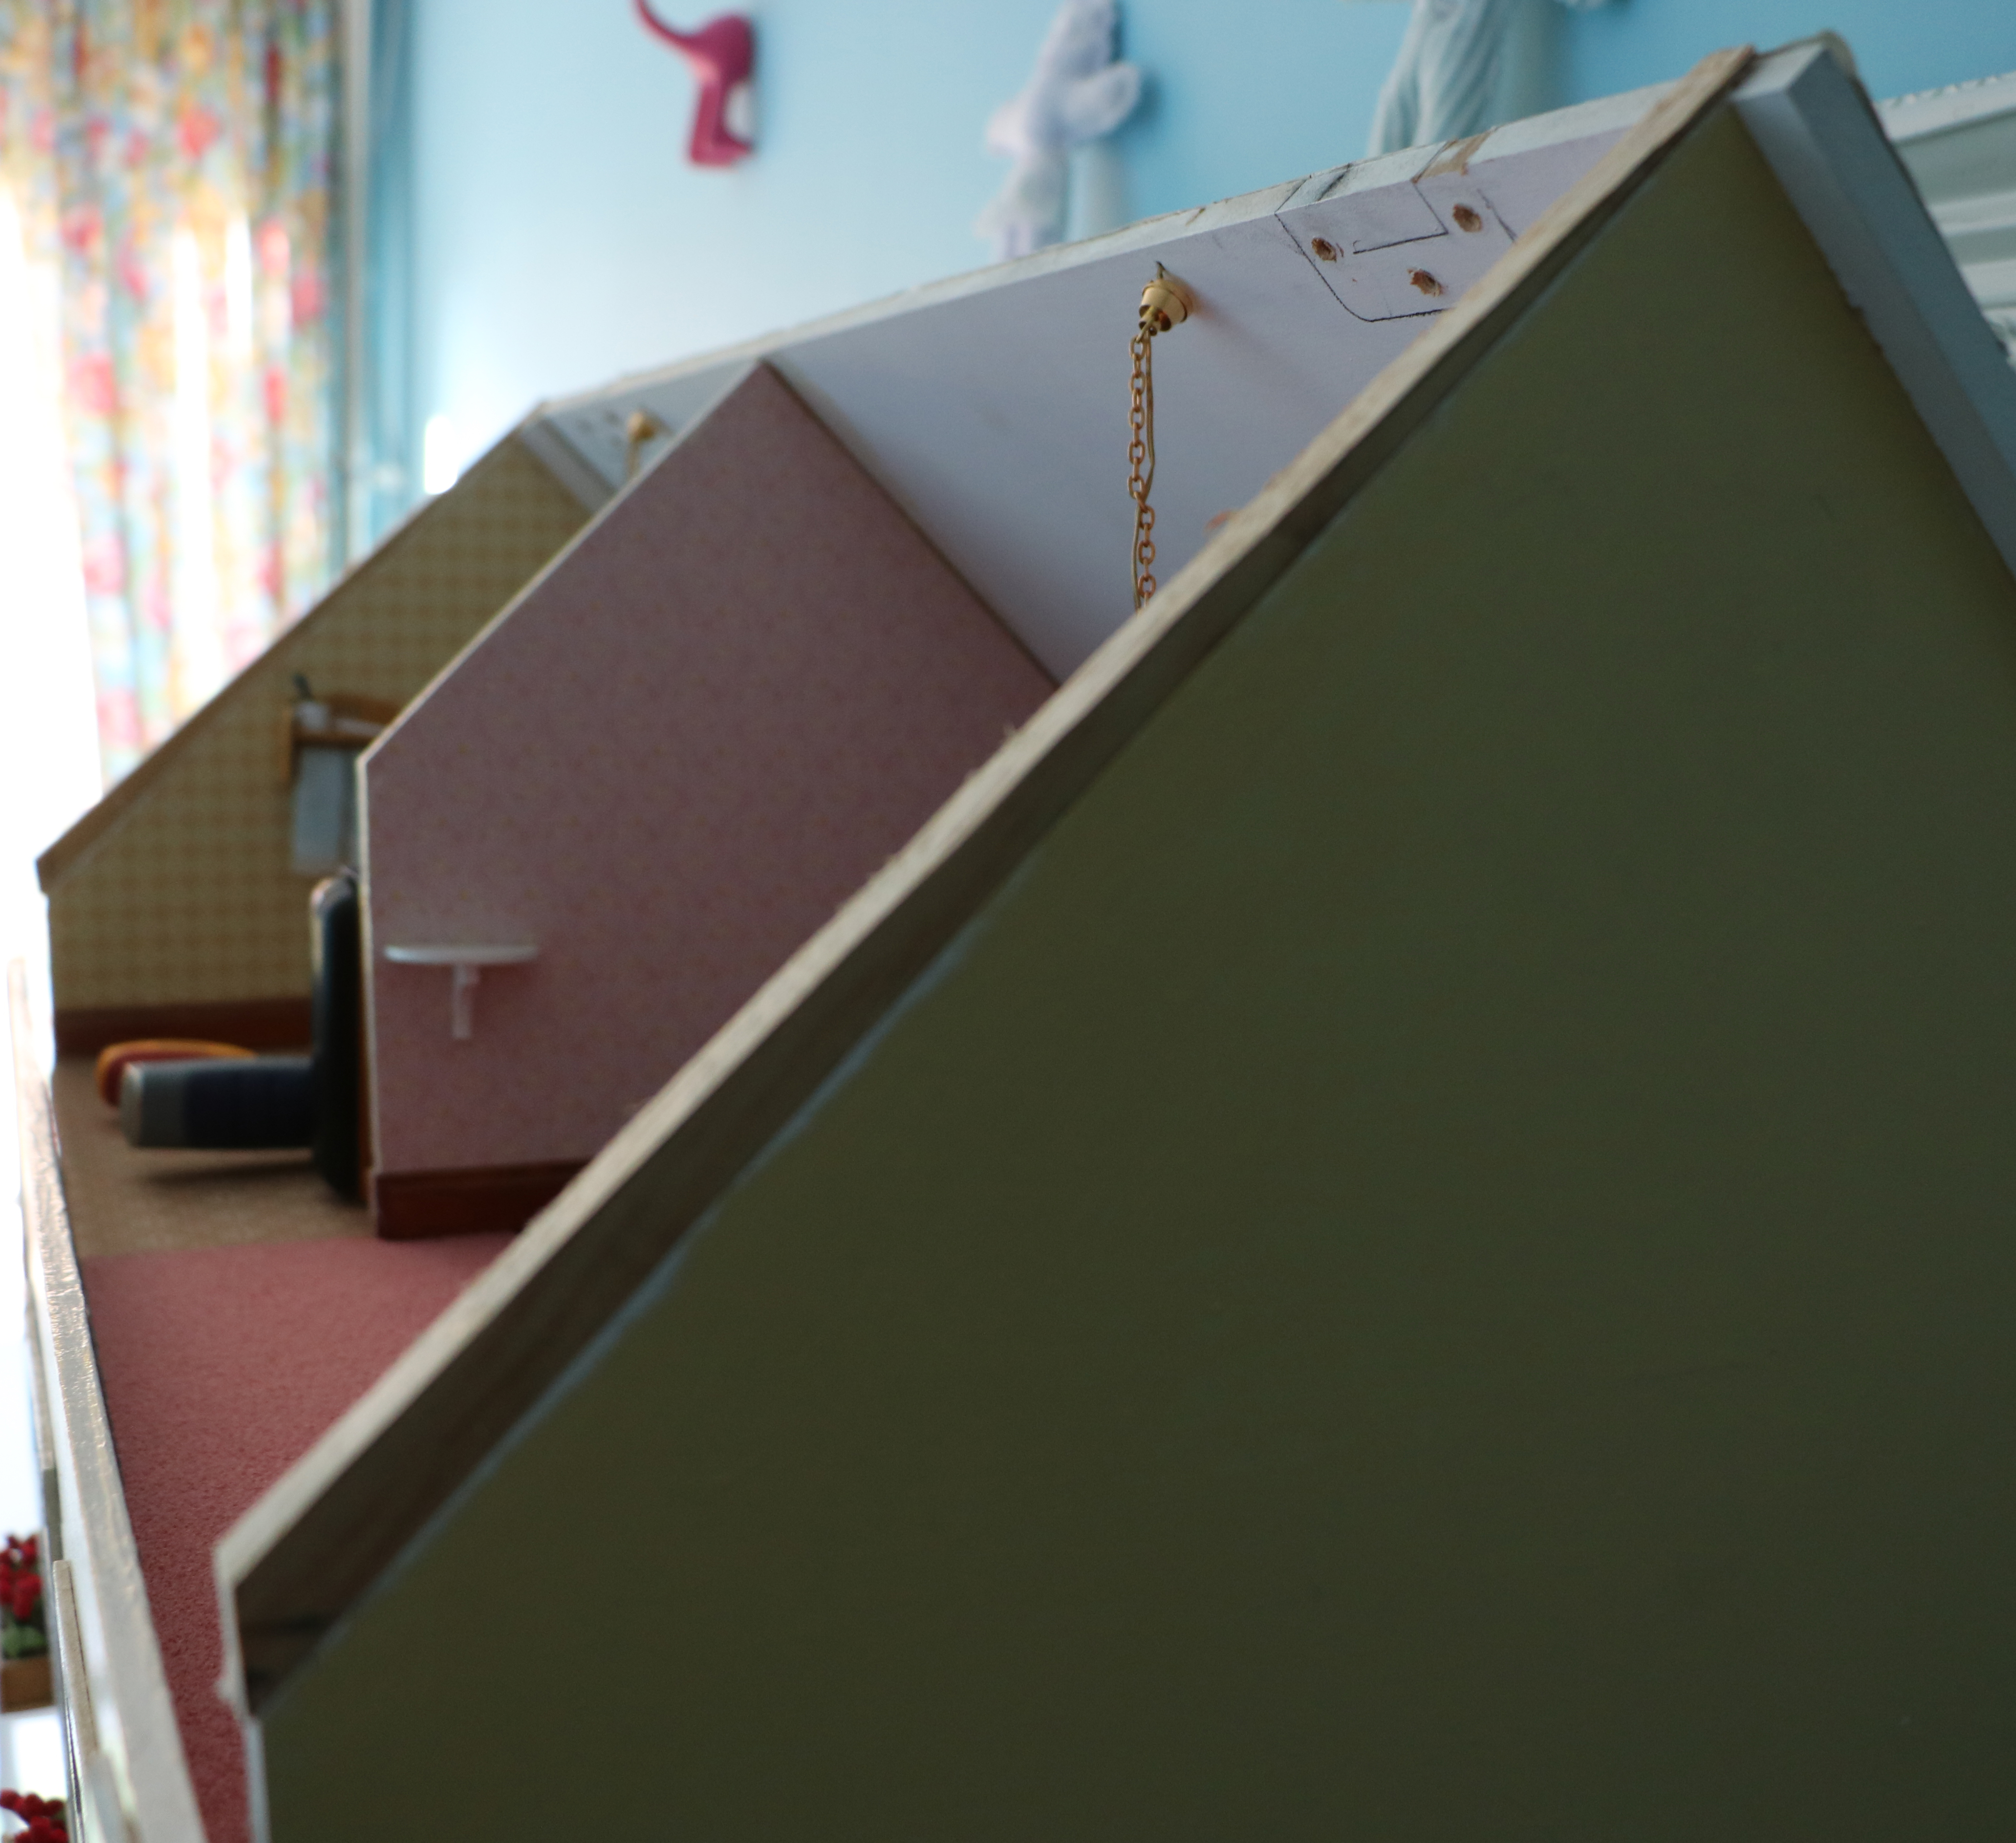 Side of dolls house showing extra piece of wood added on pitched top